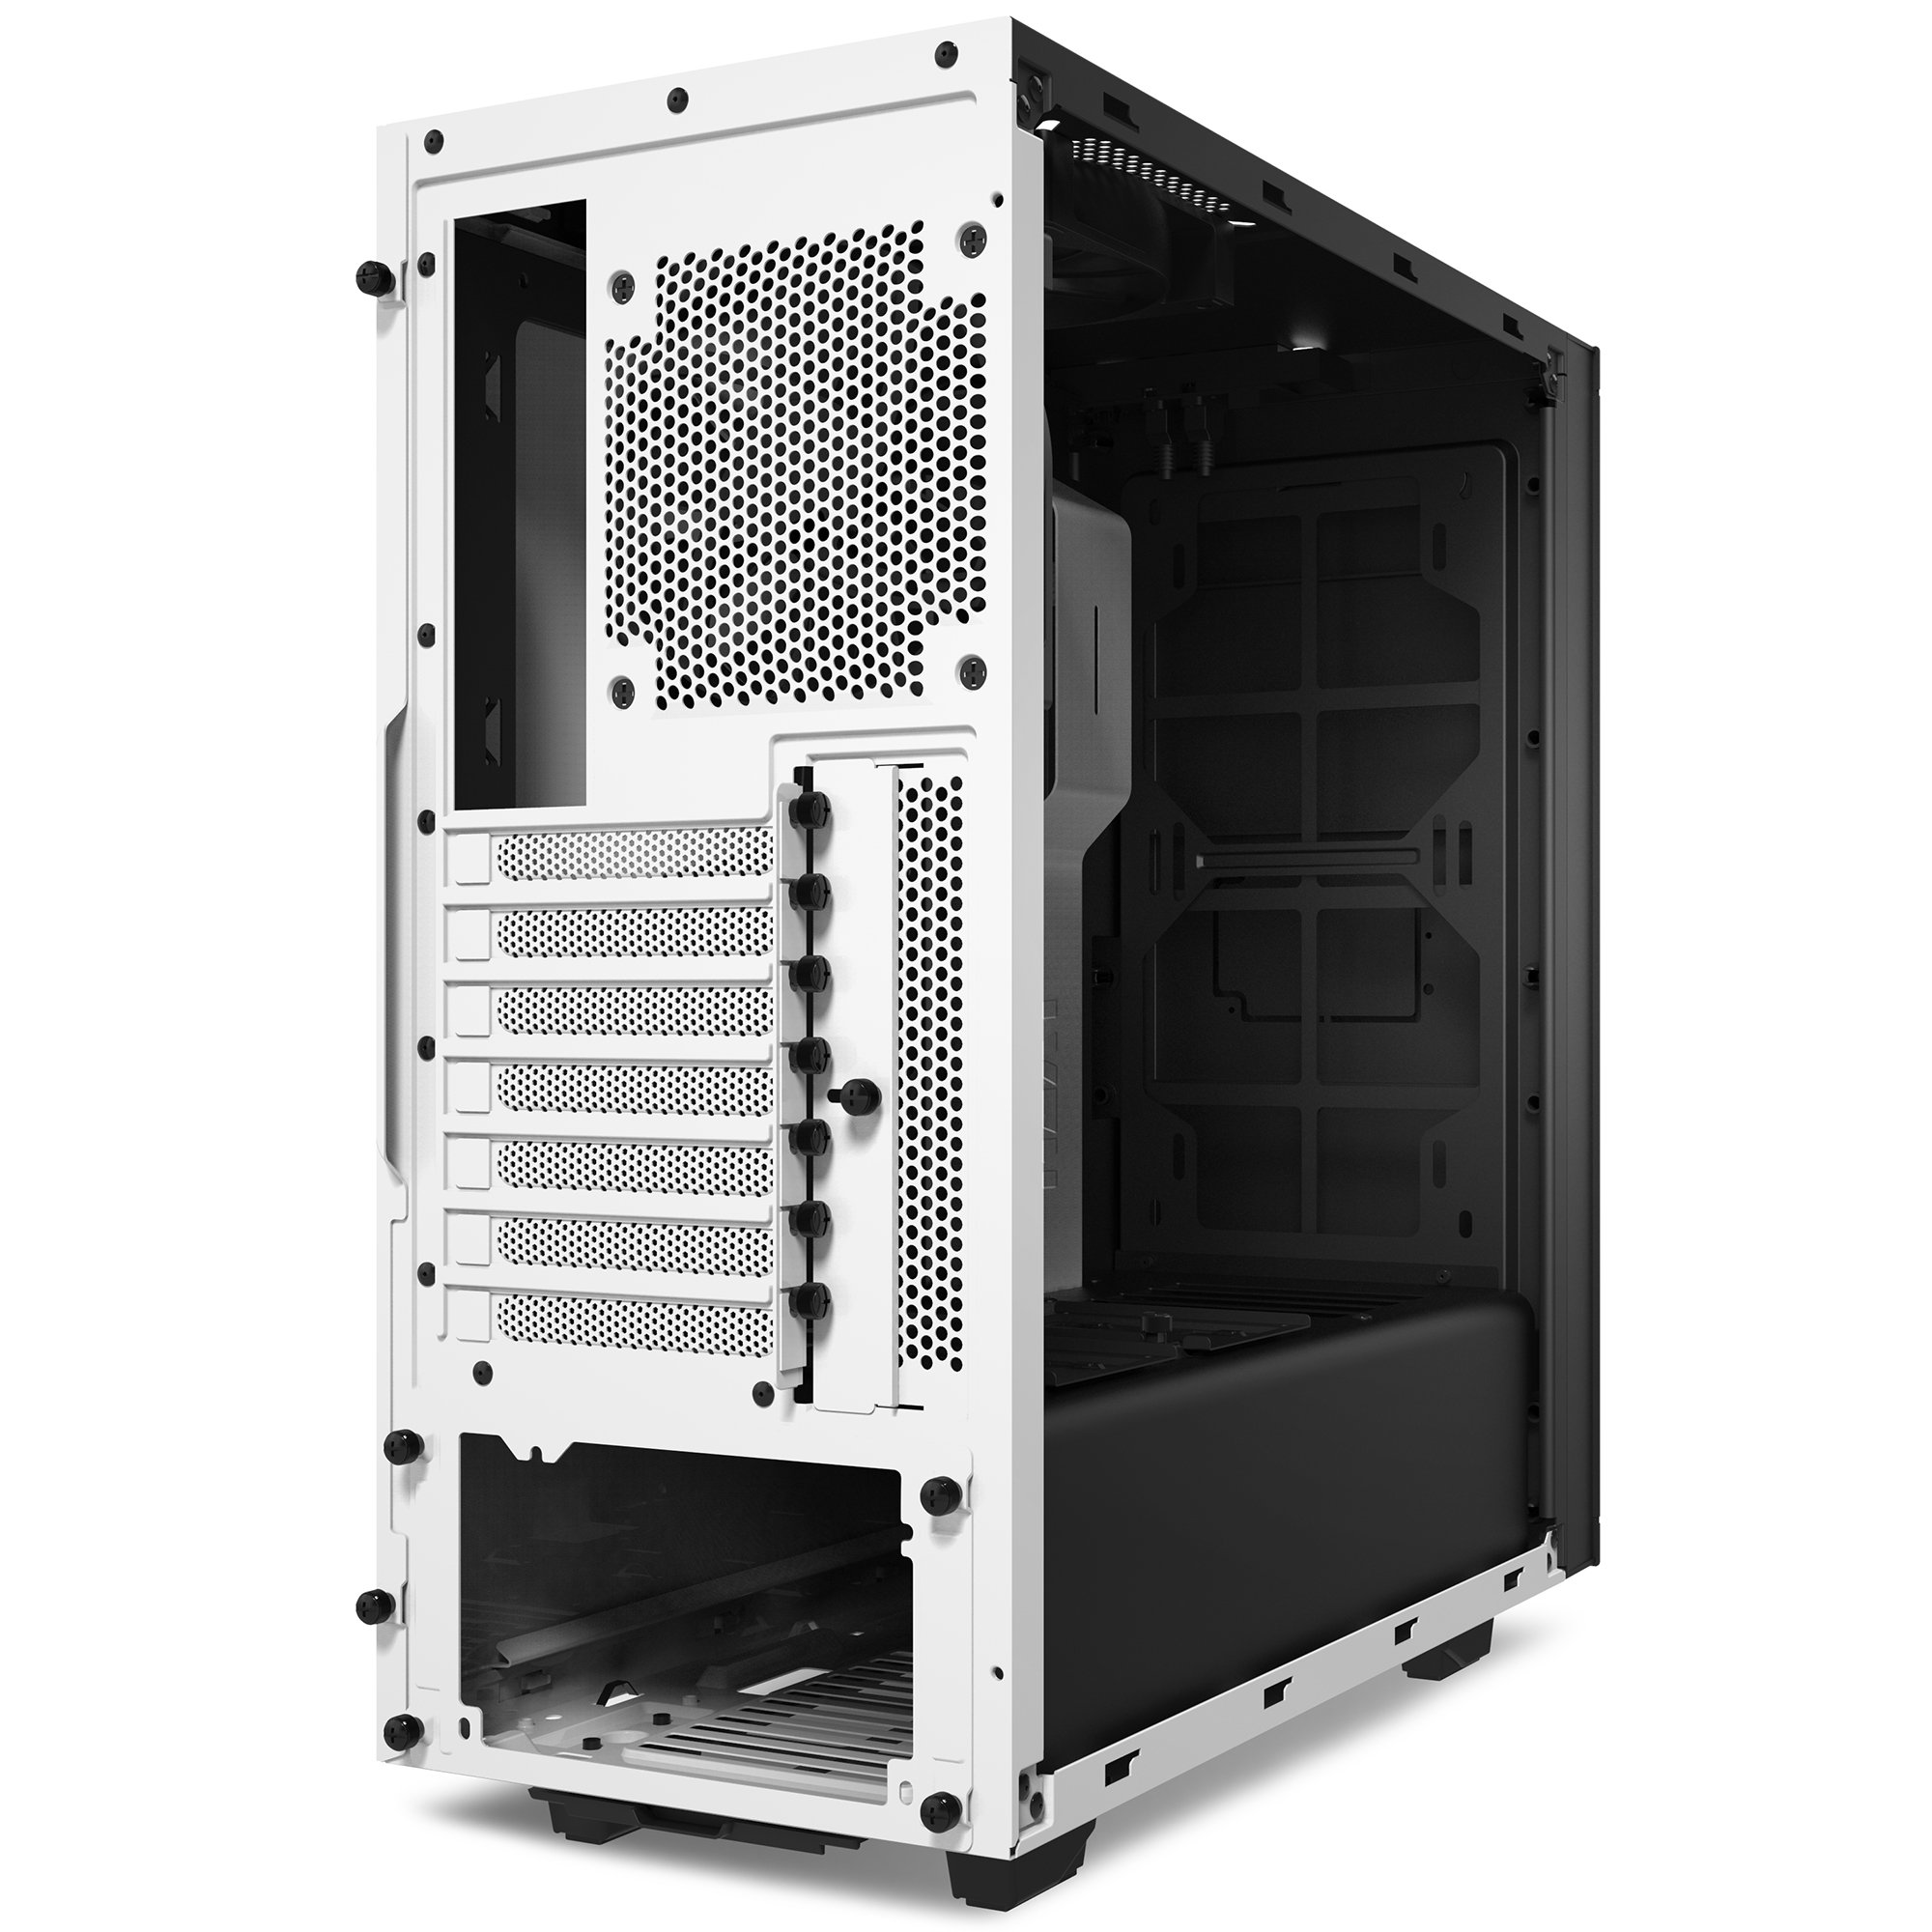 NZXT S340 Mid Tower Computer Case, White (CA-S340W-W1) by Nzxt (Image #2)